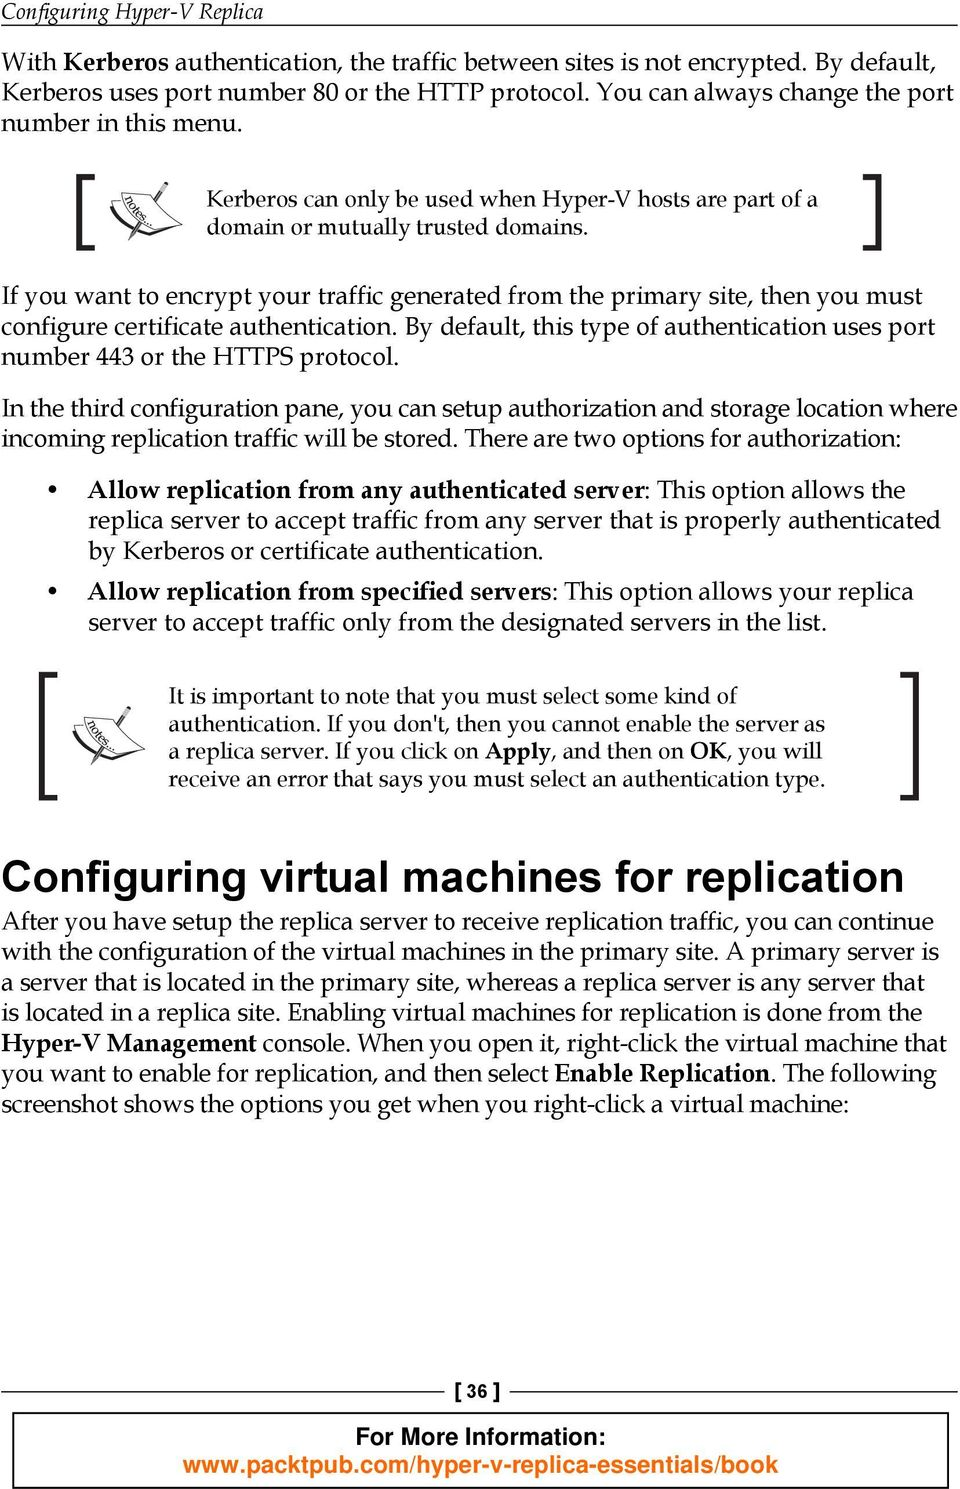 If you want to encrypt your traffic generated from the primary site, then you must configure certificate authentication.